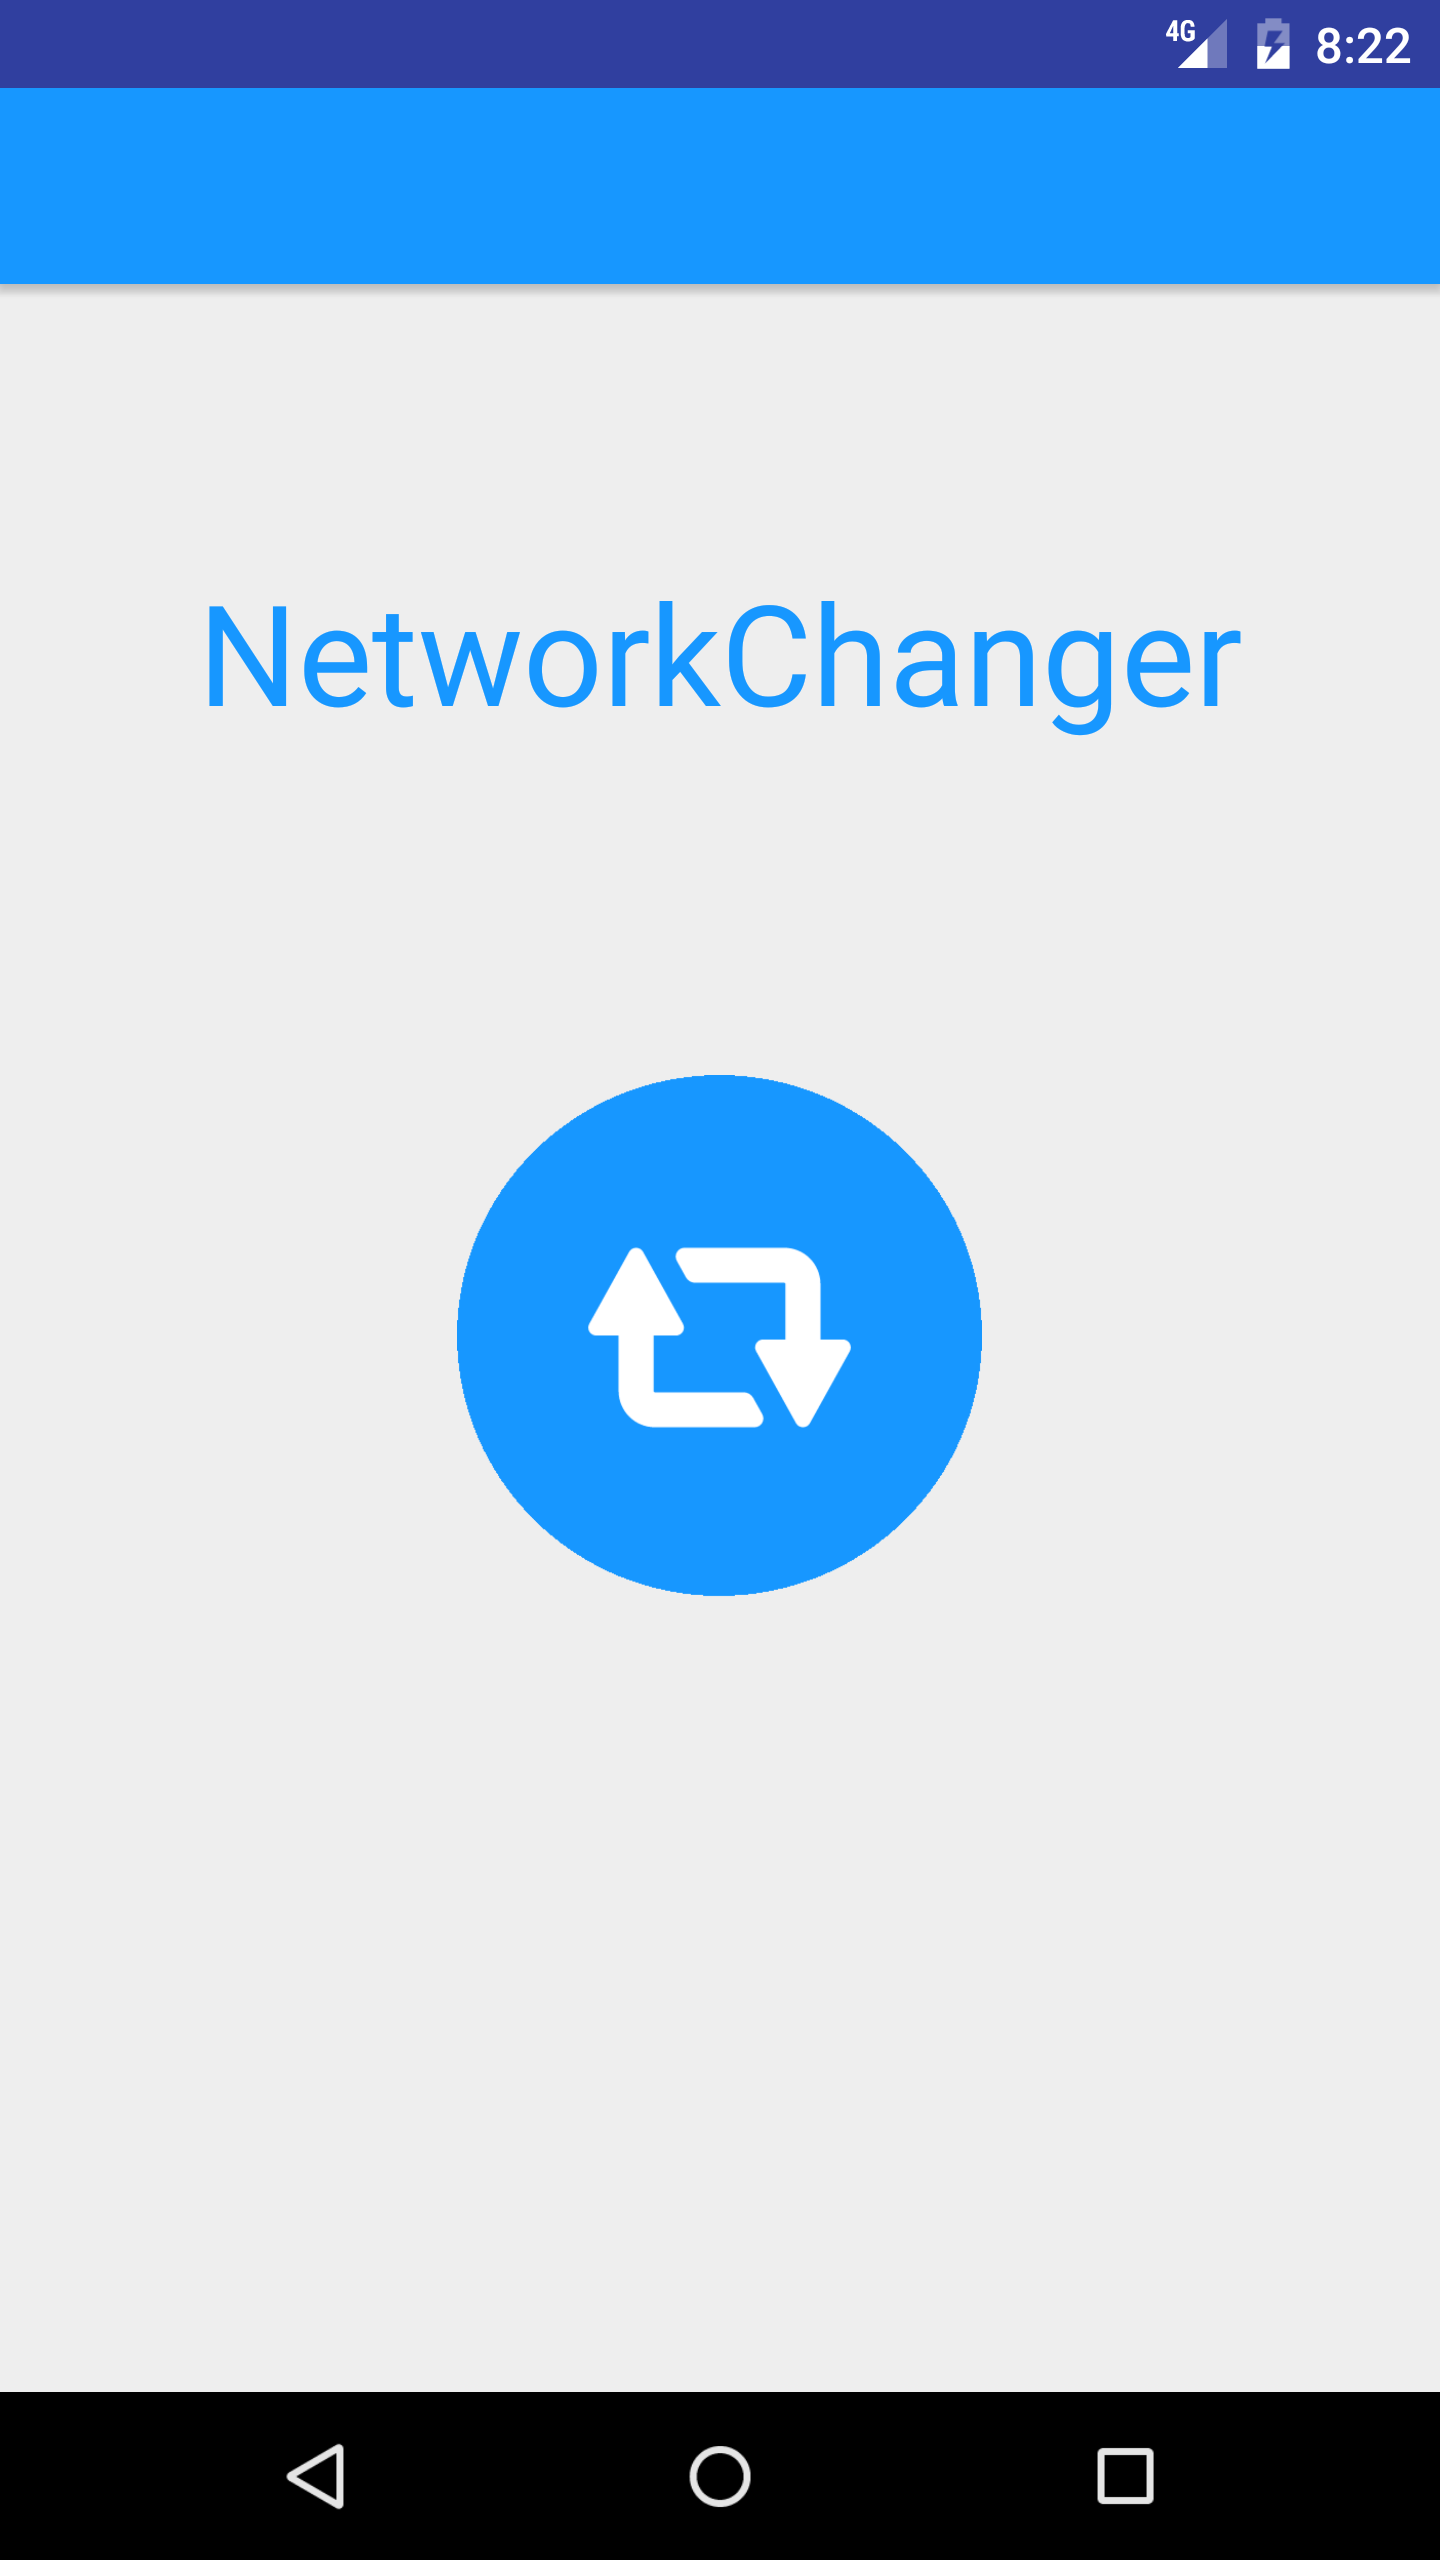 NetworkChanger_1.png